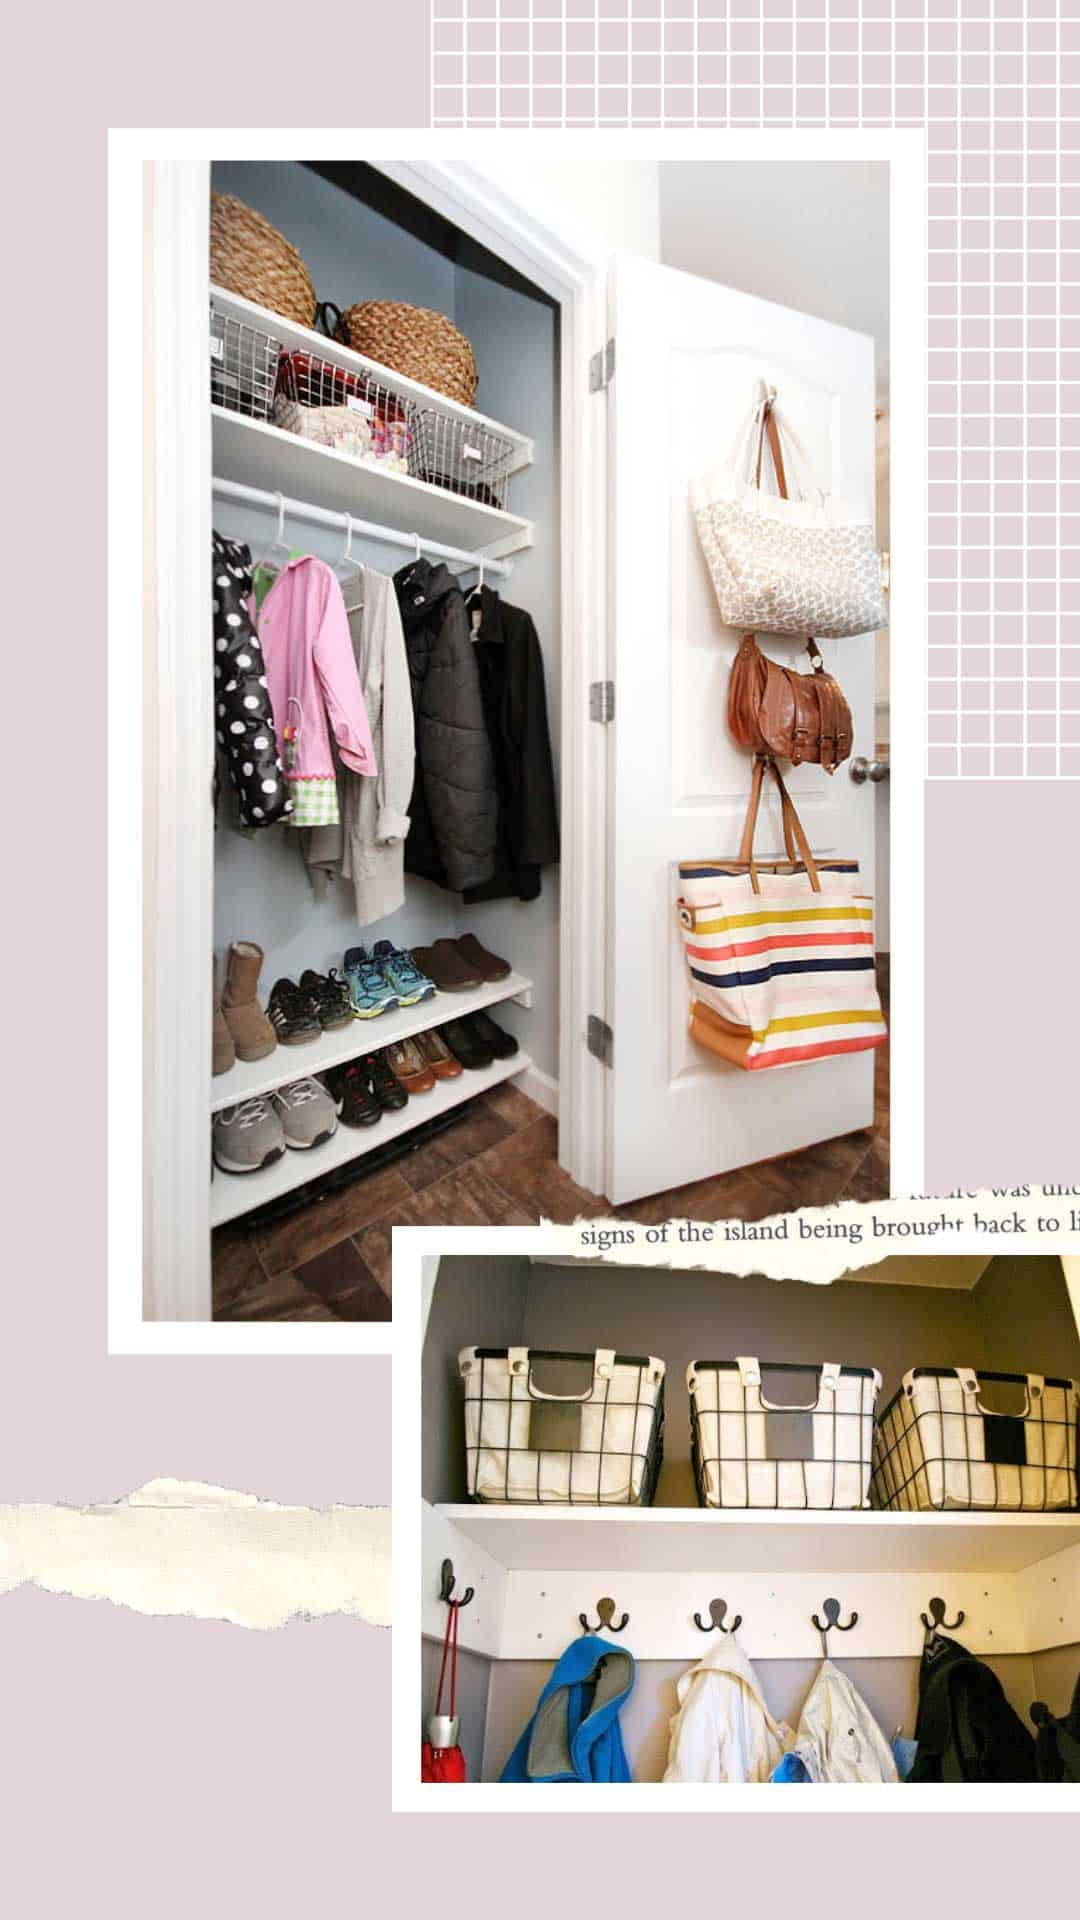 If your front closet is cluttered and disorganized it's time to give it some TLC and turn it into a coat closet your guests will be jealous of! Don't miss these hacks that are easy to do this weekend! #organize